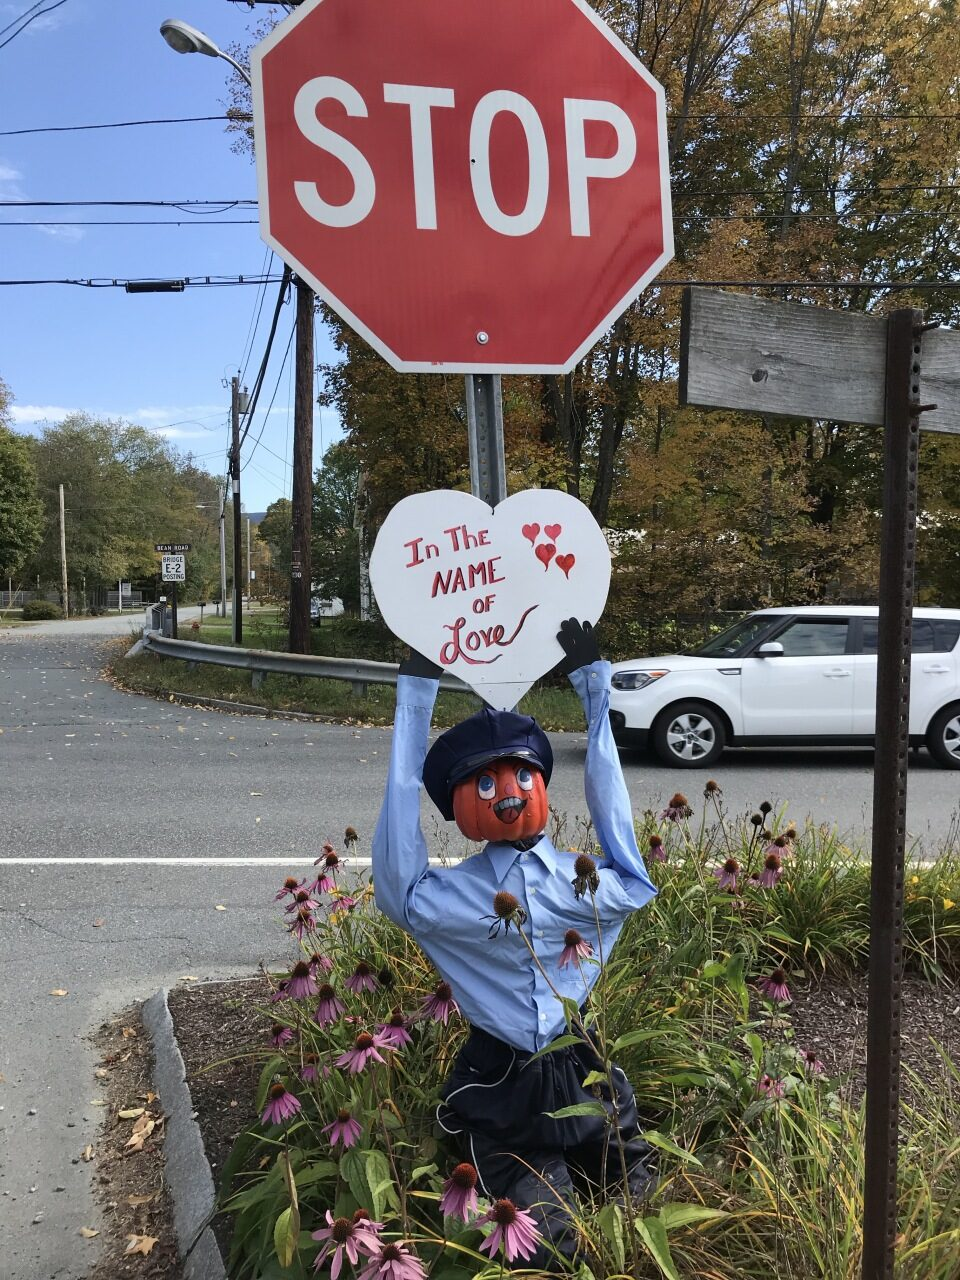 Stop in the name of LOVE! at 7 Main St